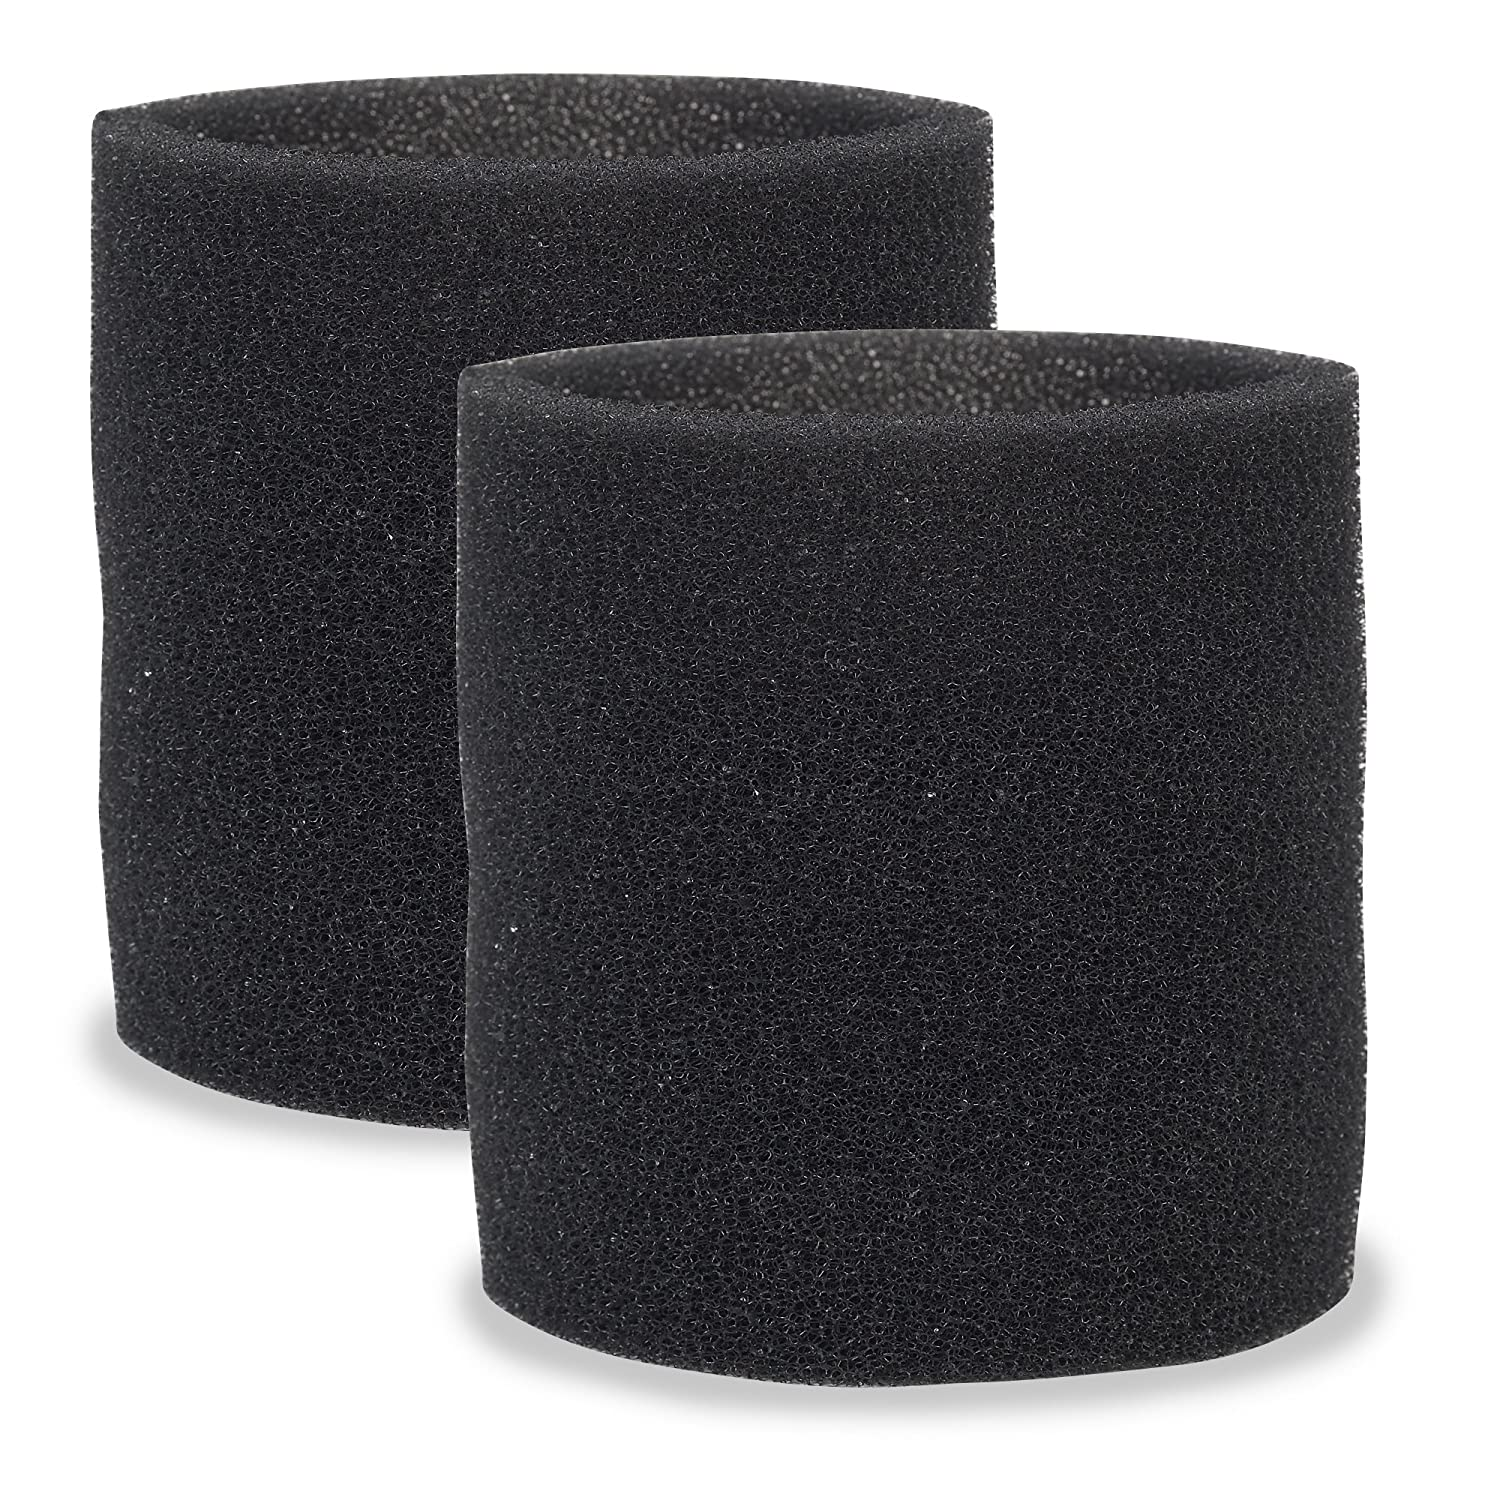 Multi-Fit Wet Vac Filters VF2001TP Foam Sleeve/Foam Filter For Wet Dry Vacuum Cleaner (2 Pack Wet Vac Filter Foam Sleeve) Fits Most Shop-Vac, Vacmaster & Genie Shop Vacuum Cleaners